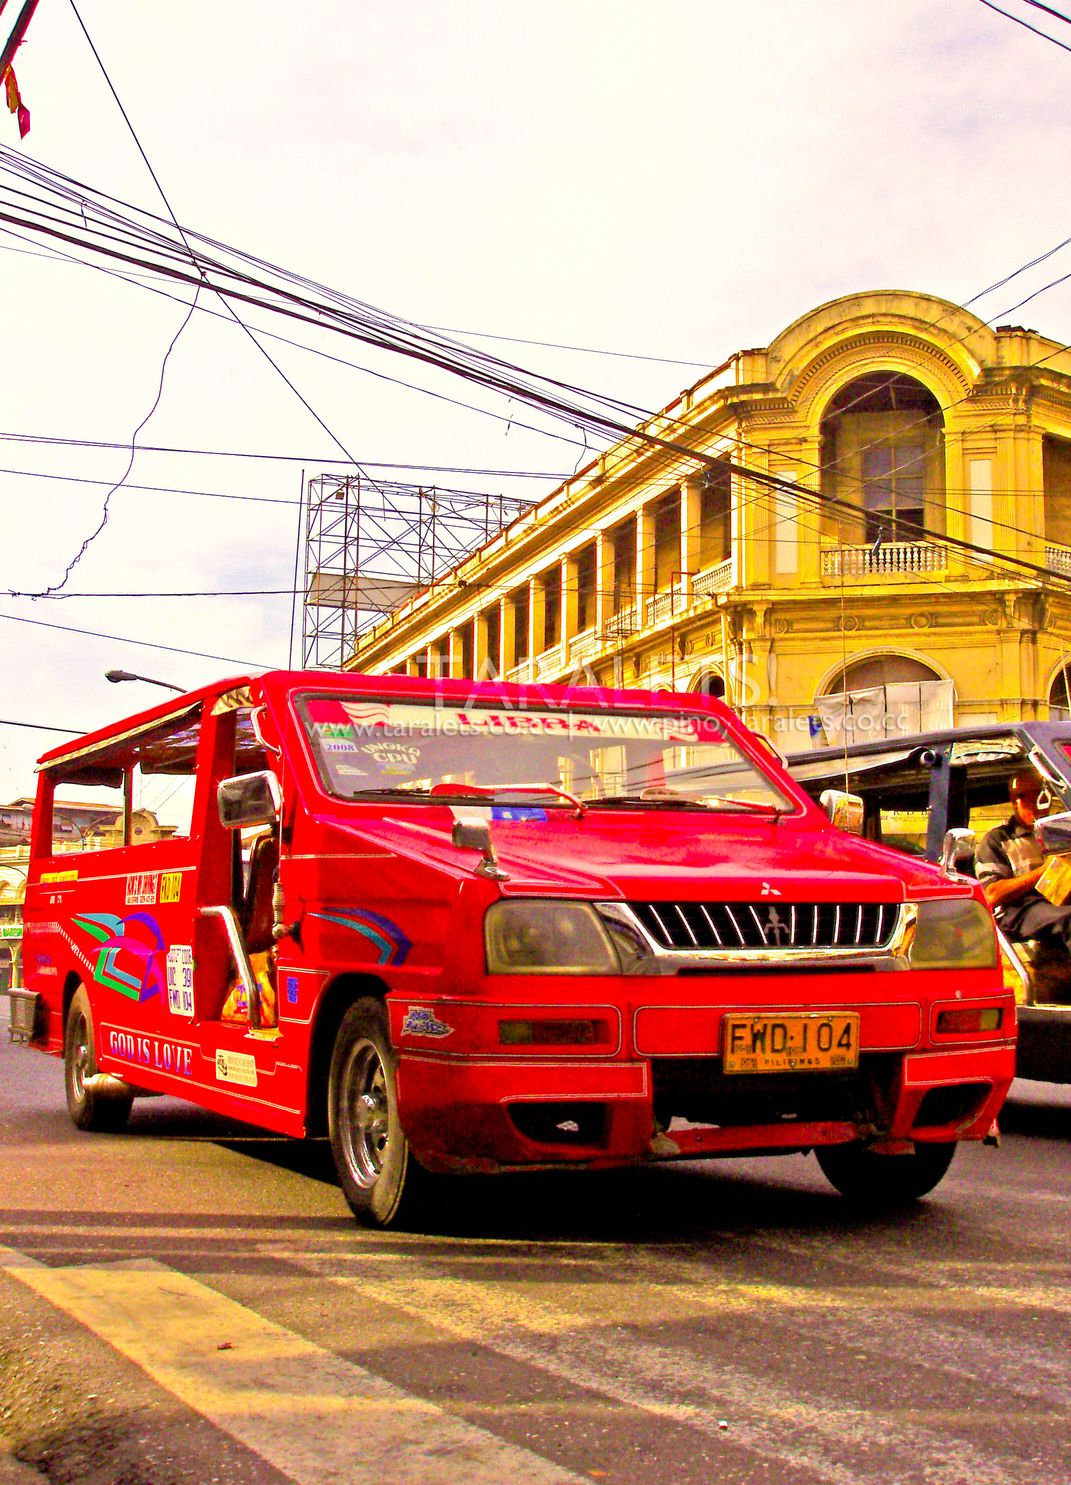 Red jeepney passing along